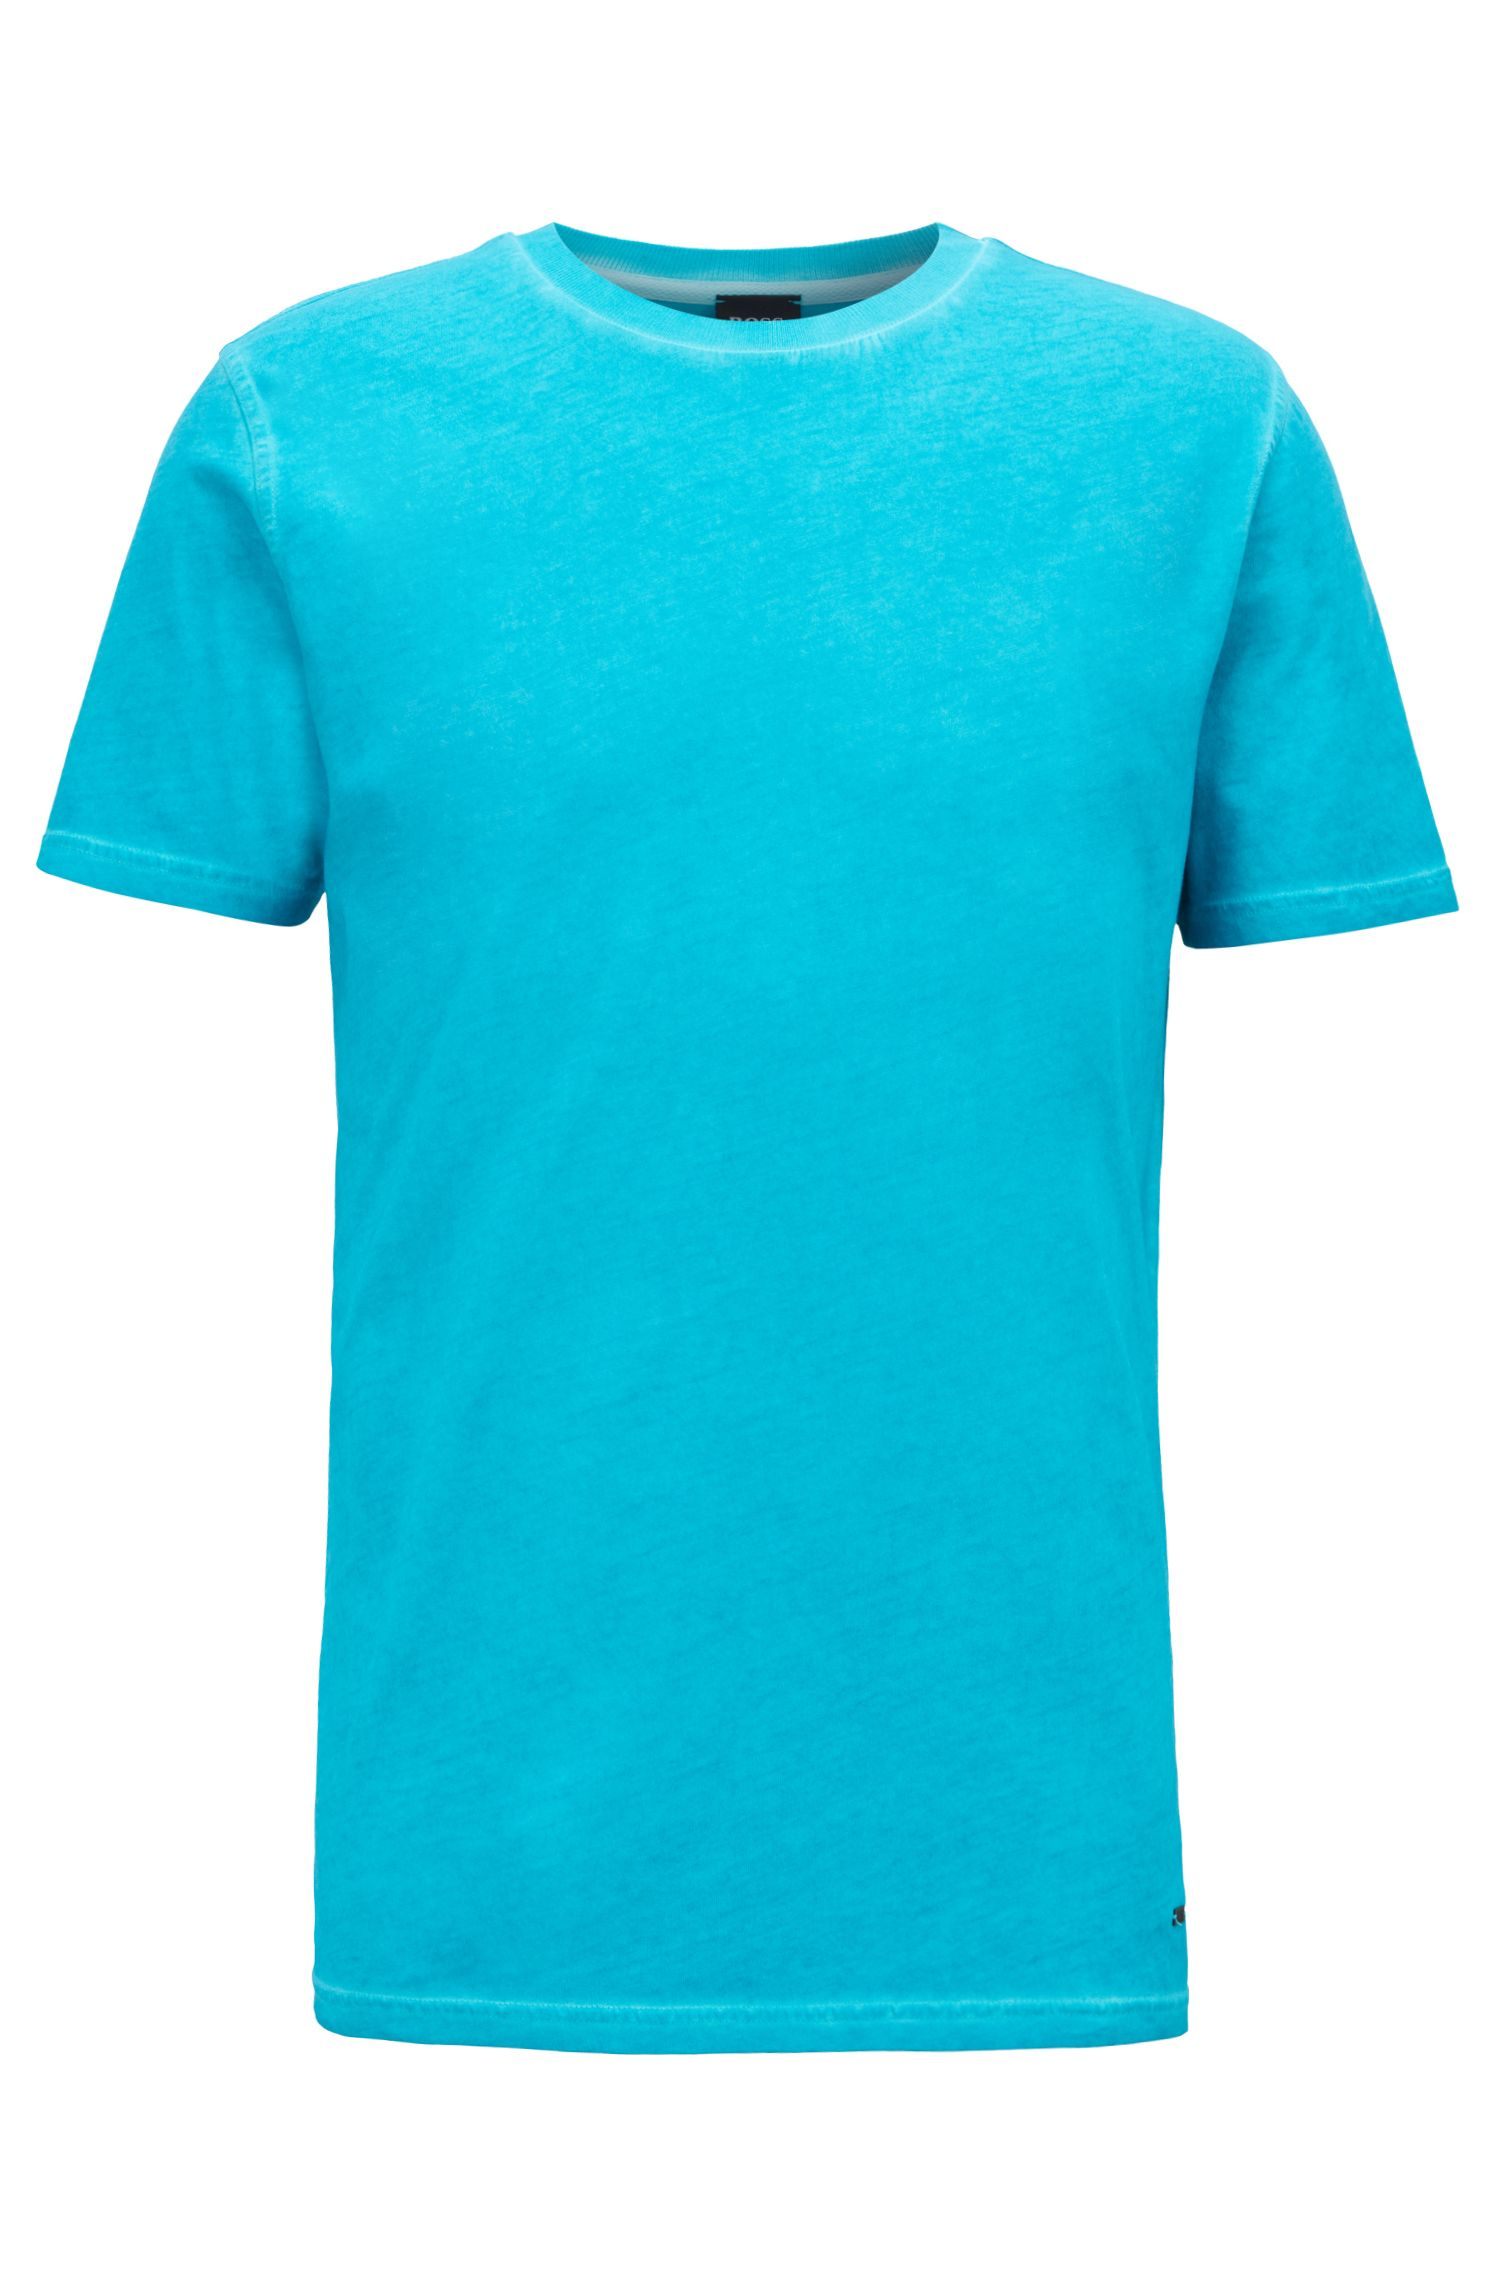 Crew-neck T-shirt in garment-dyed single-jersey cotton, Turquoise